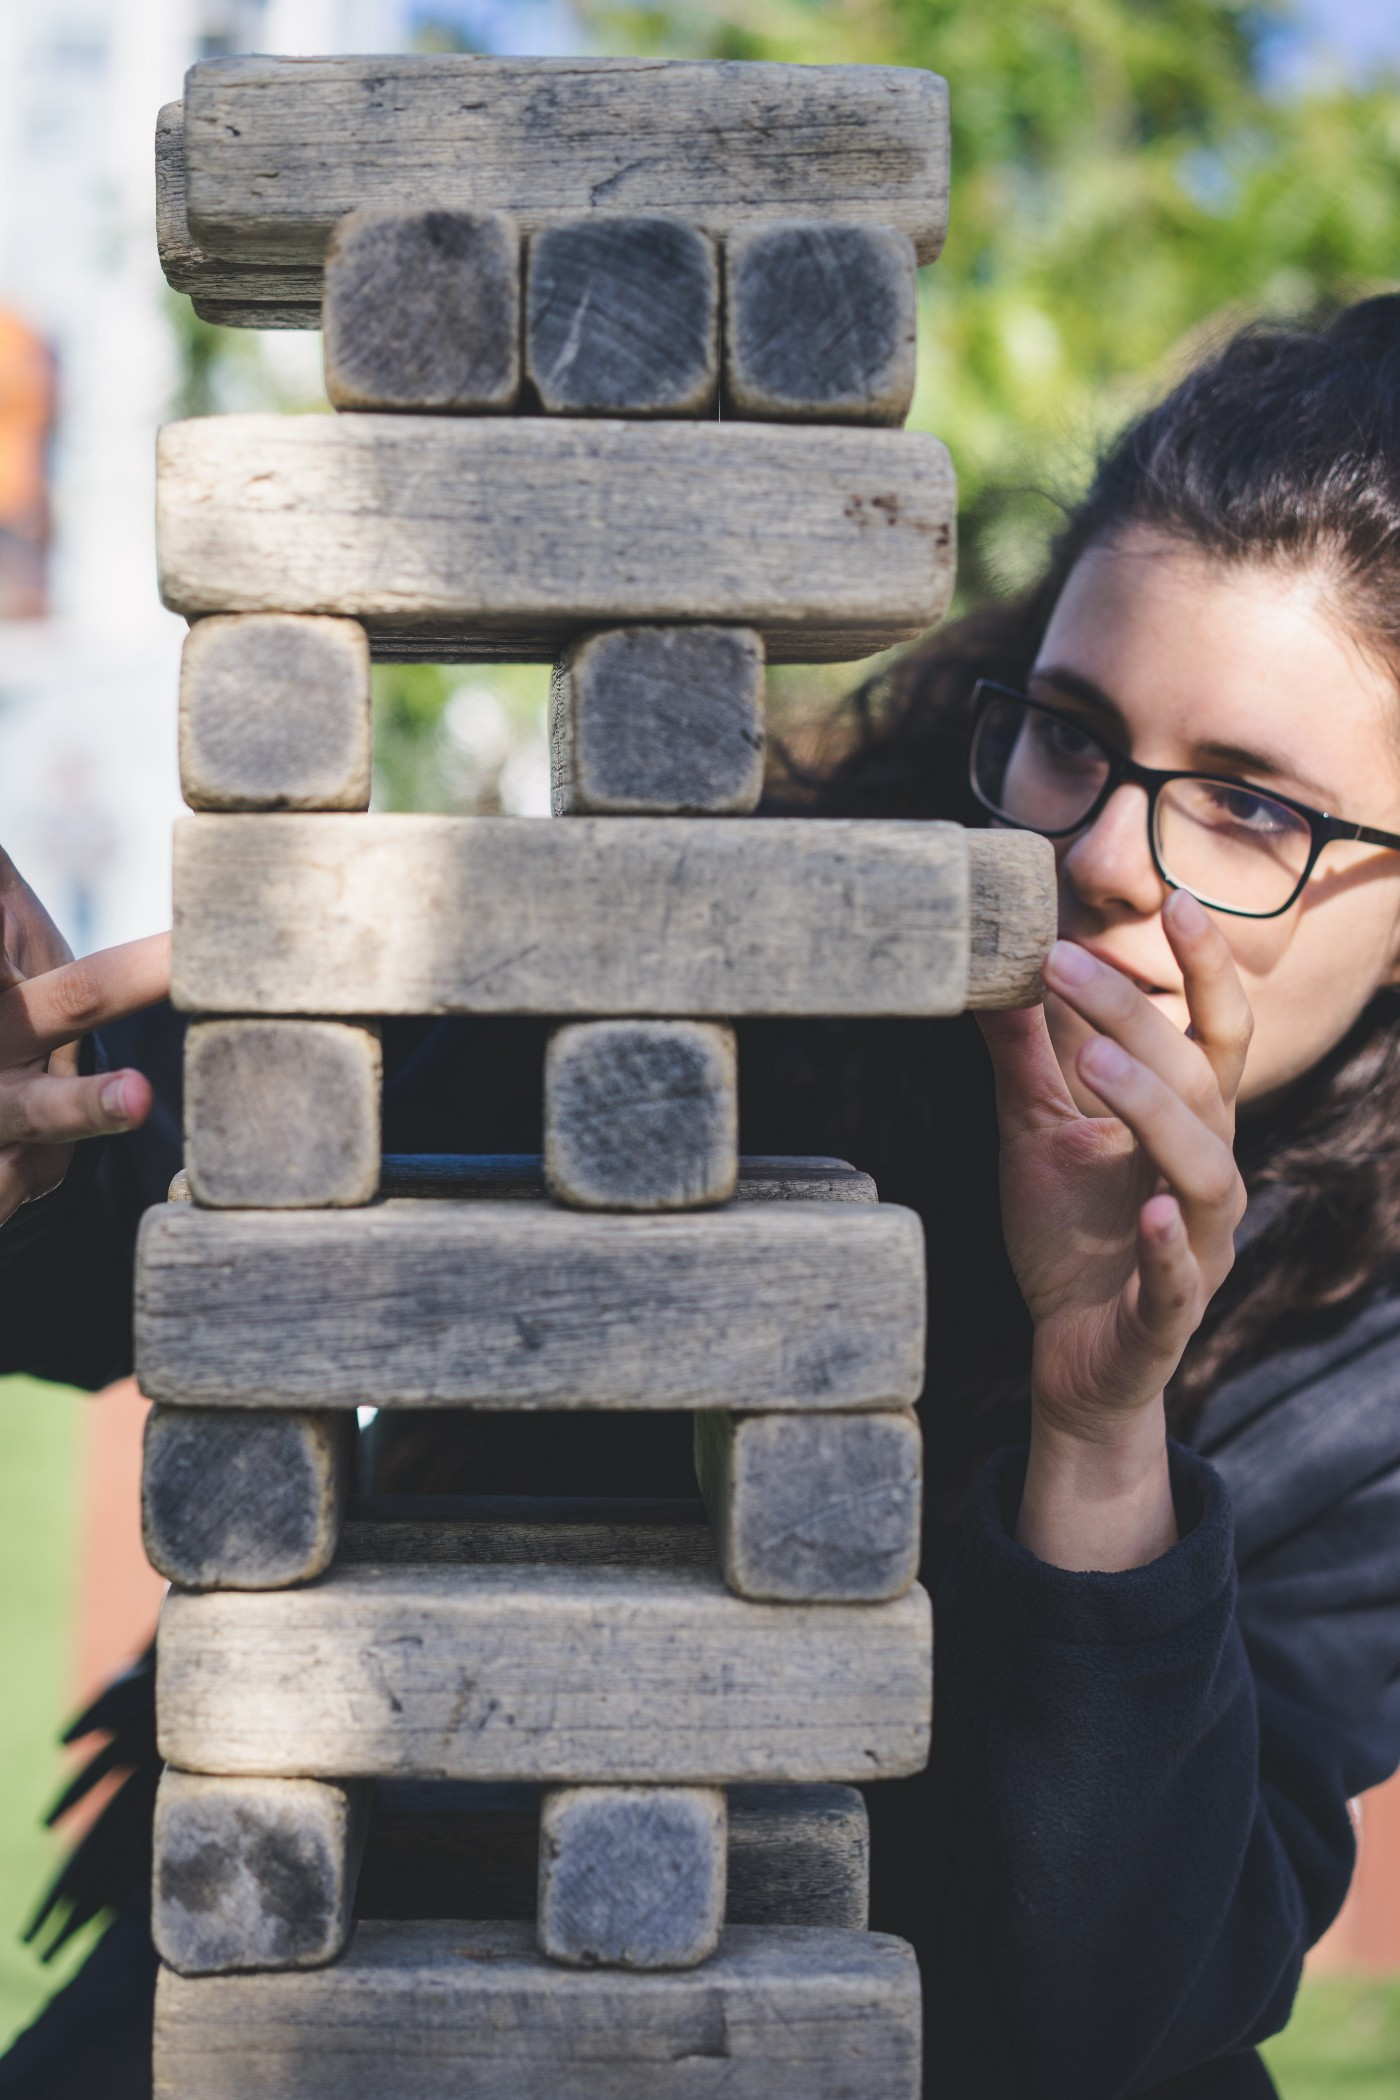 A young woman wearing glasses playing the game of Jenga with wooden sticks.